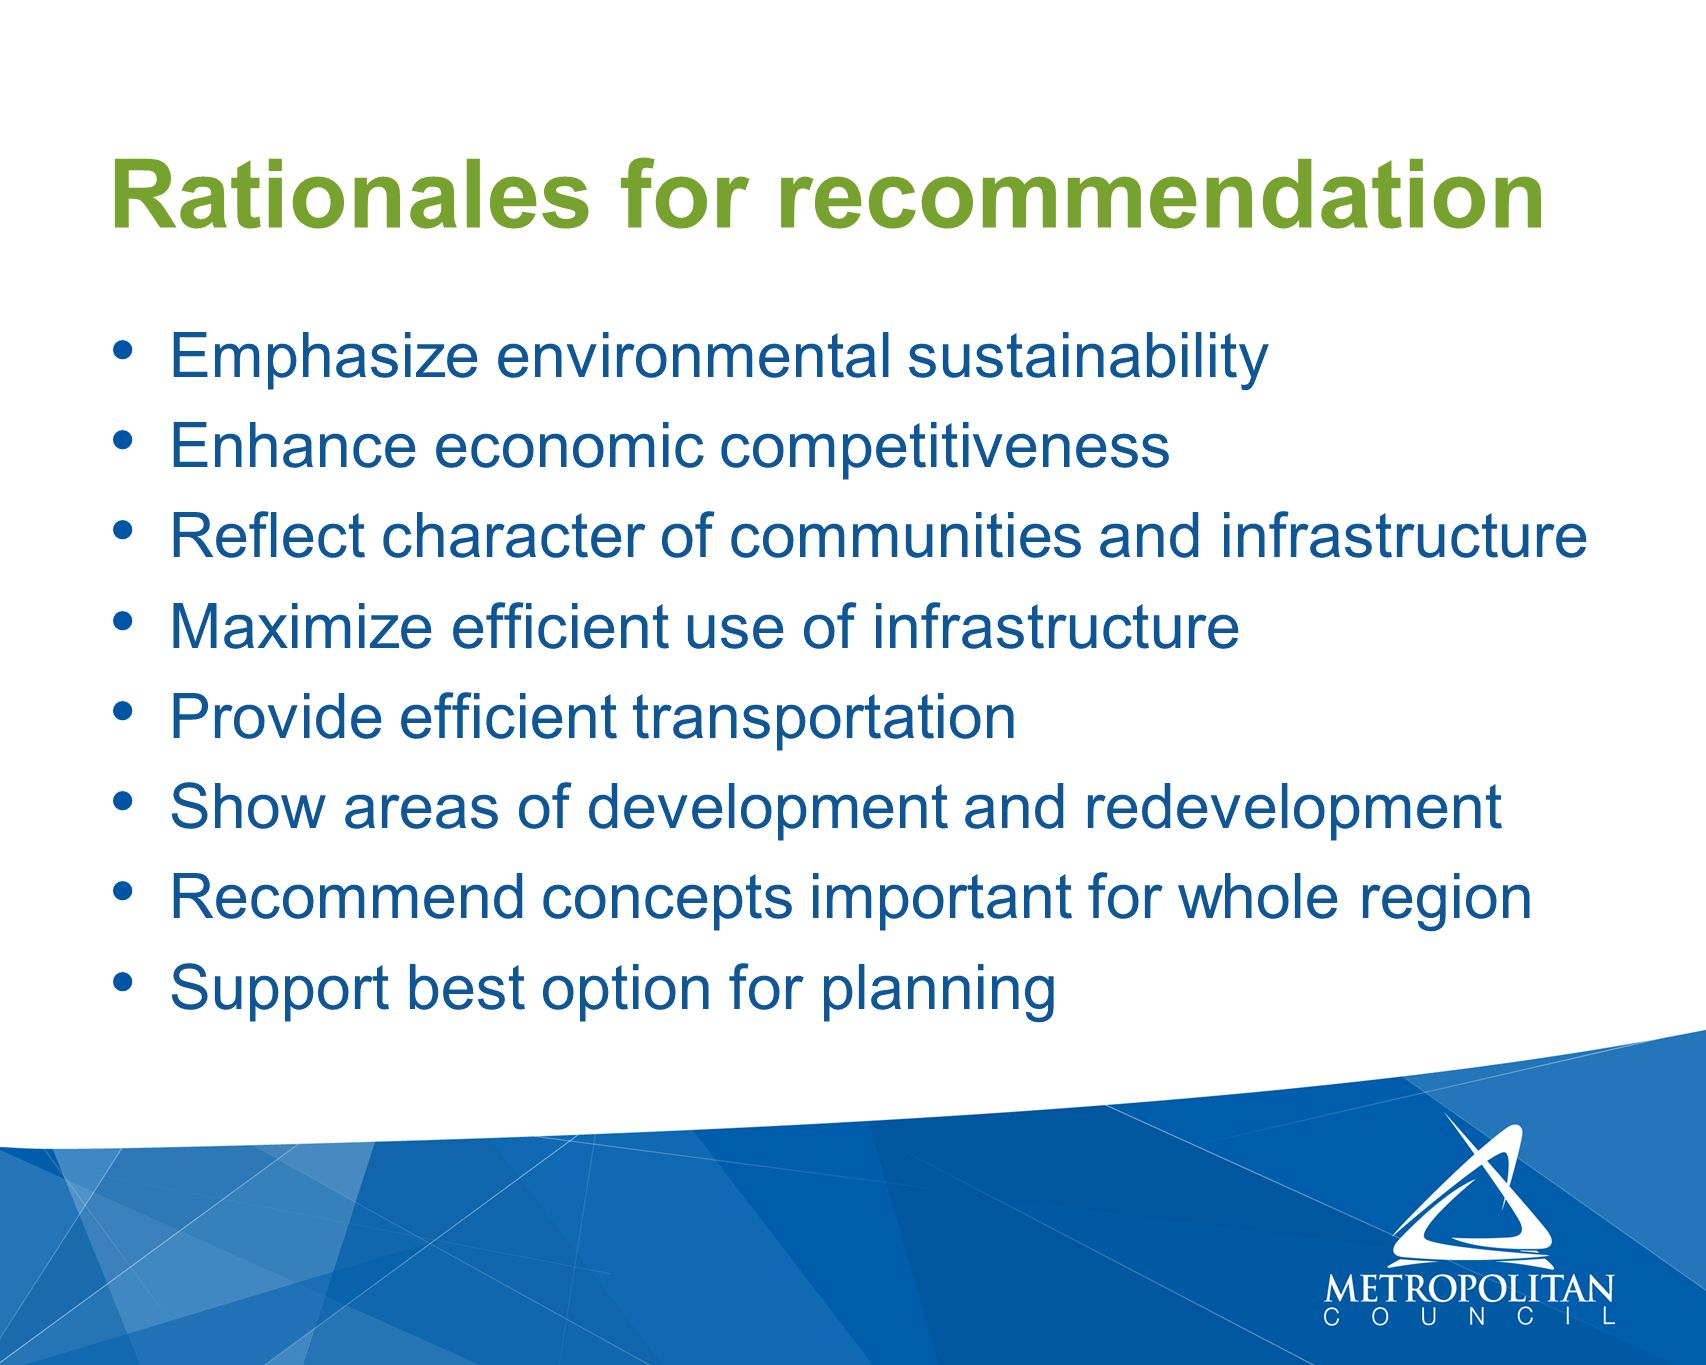 Emphasize environmental sustainability Enhance economic competitiveness Reflect character of communities and infrastructure Maximize efficient use of infrastructure Provide efficient transportation Show areas of development and redevelopment Recommend concepts important for whole region Support best option for planning Rationales for recommendation